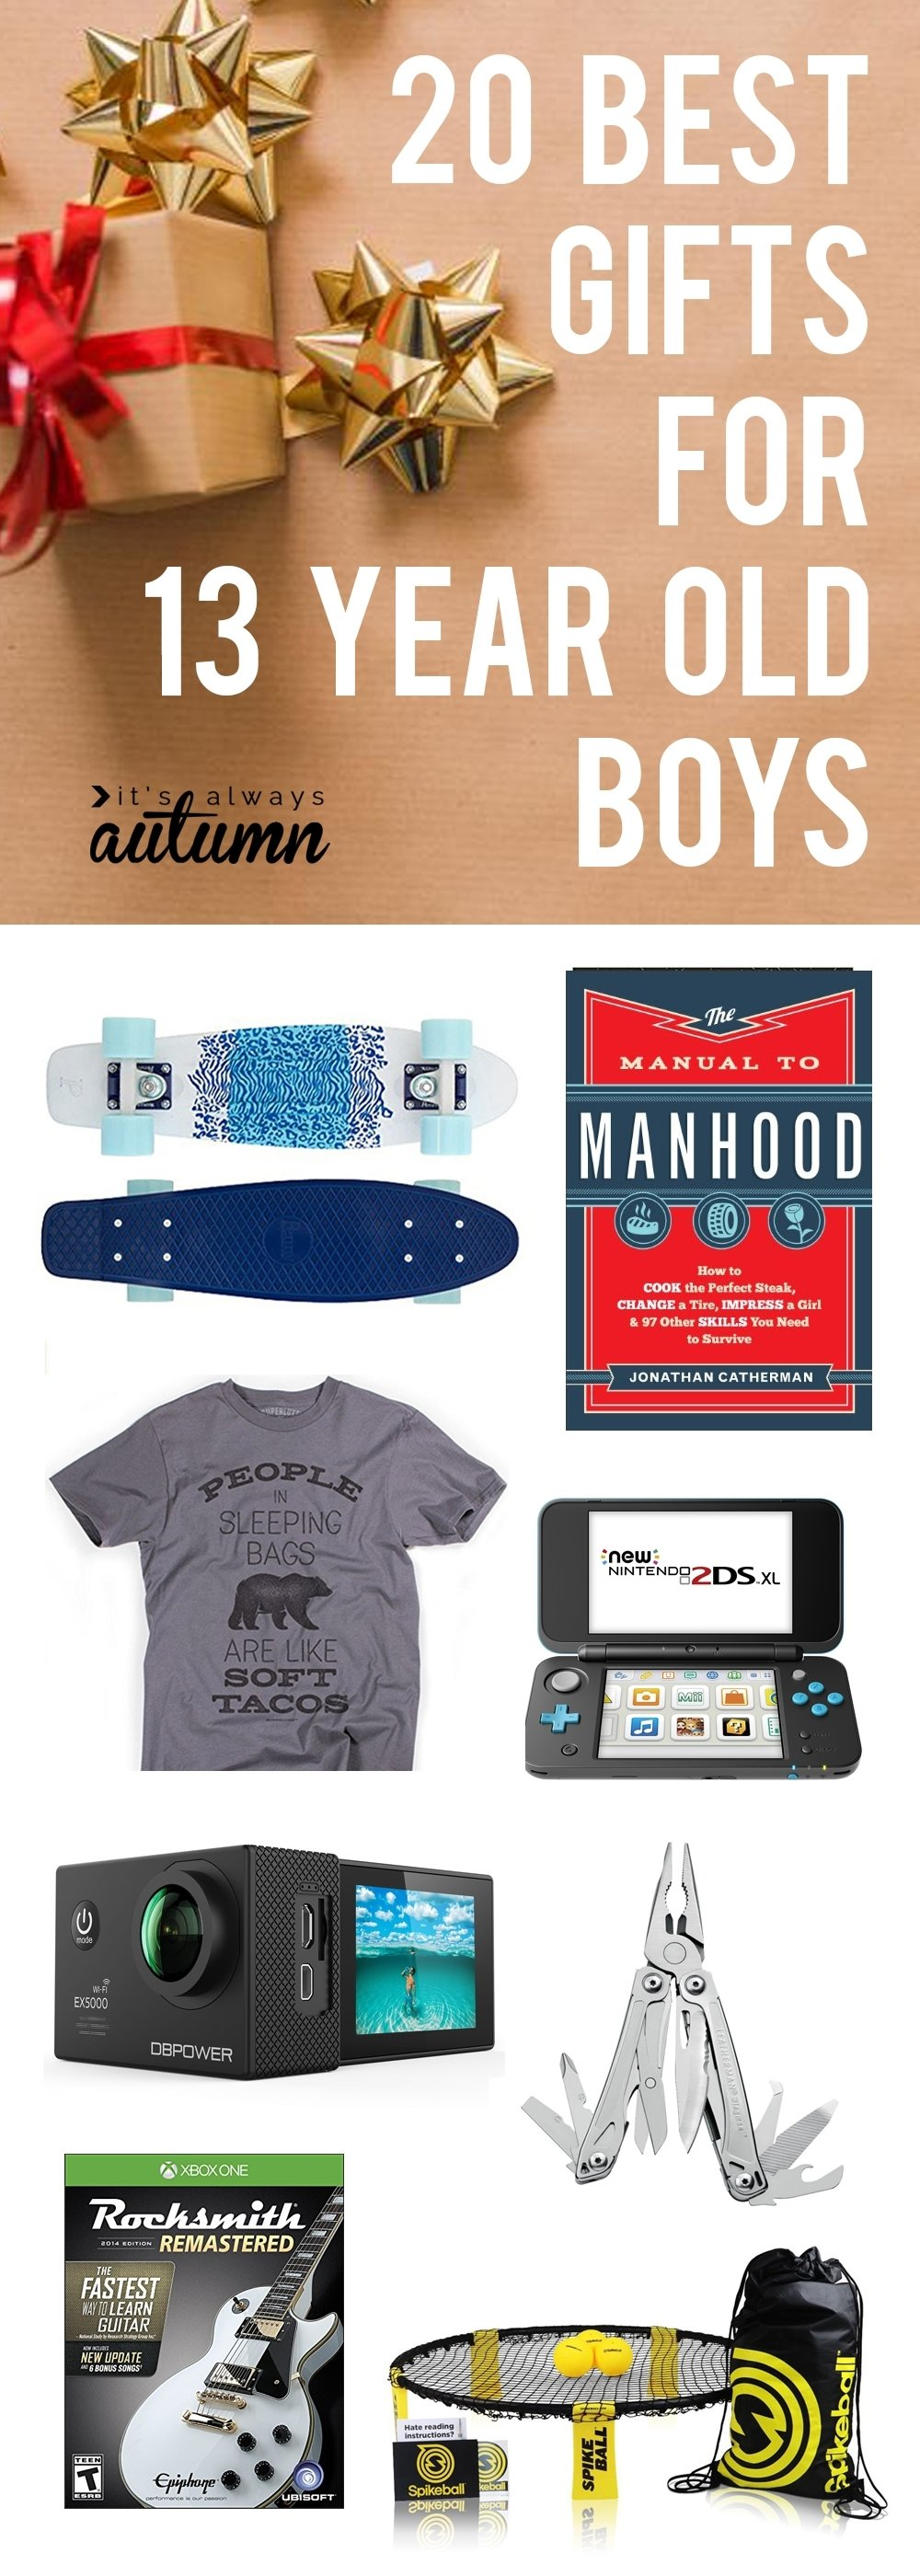 best christmas gifts for 13 year old boys - it's always autumn